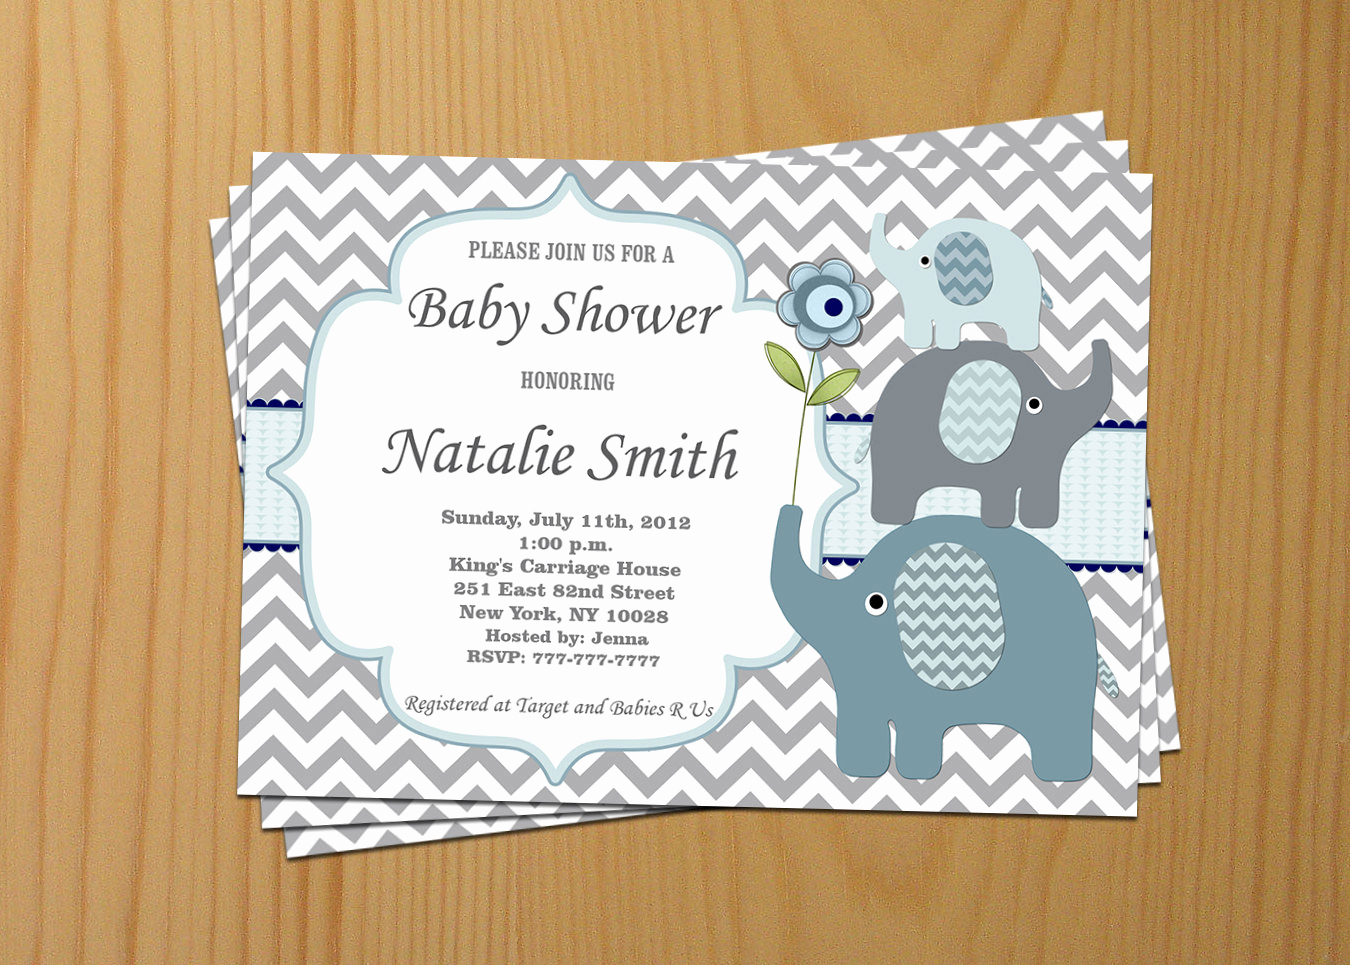 Elephant Baby Shower Invitation Templates Awesome Baby Shower Invitation Elephant Baby Shower Invitation Boy